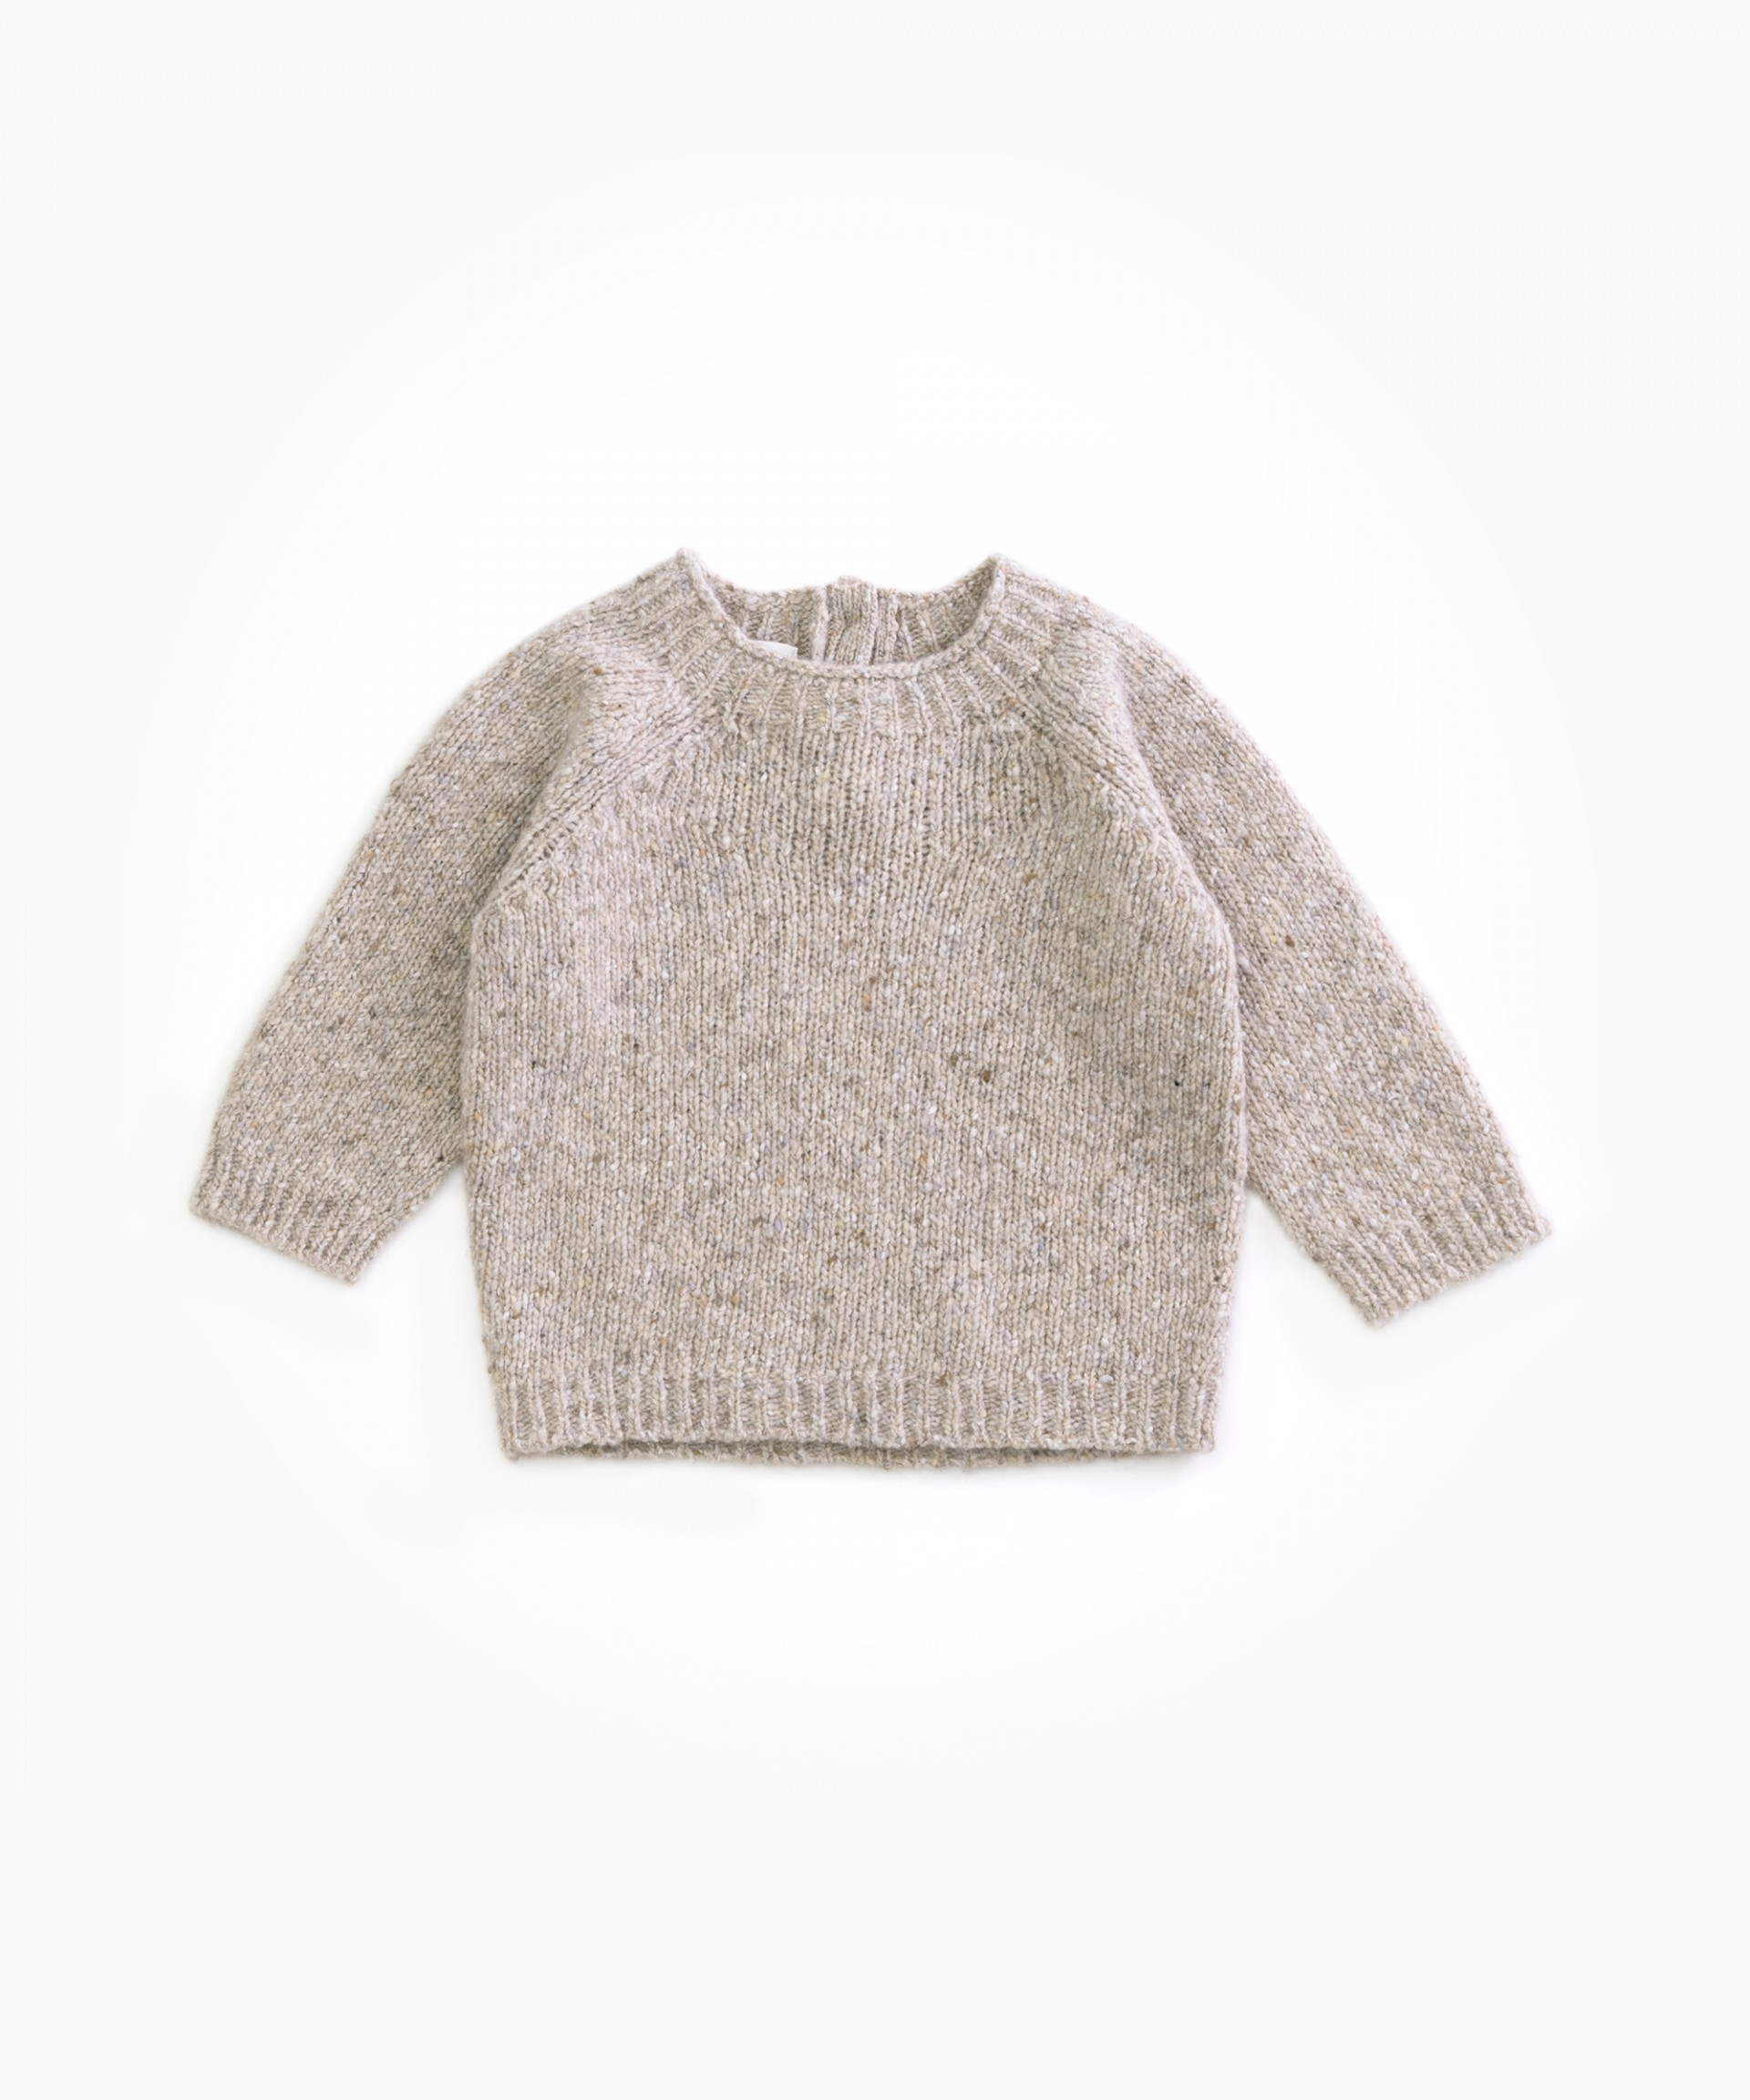 knitted sweater with coconut buttons| Woodwork